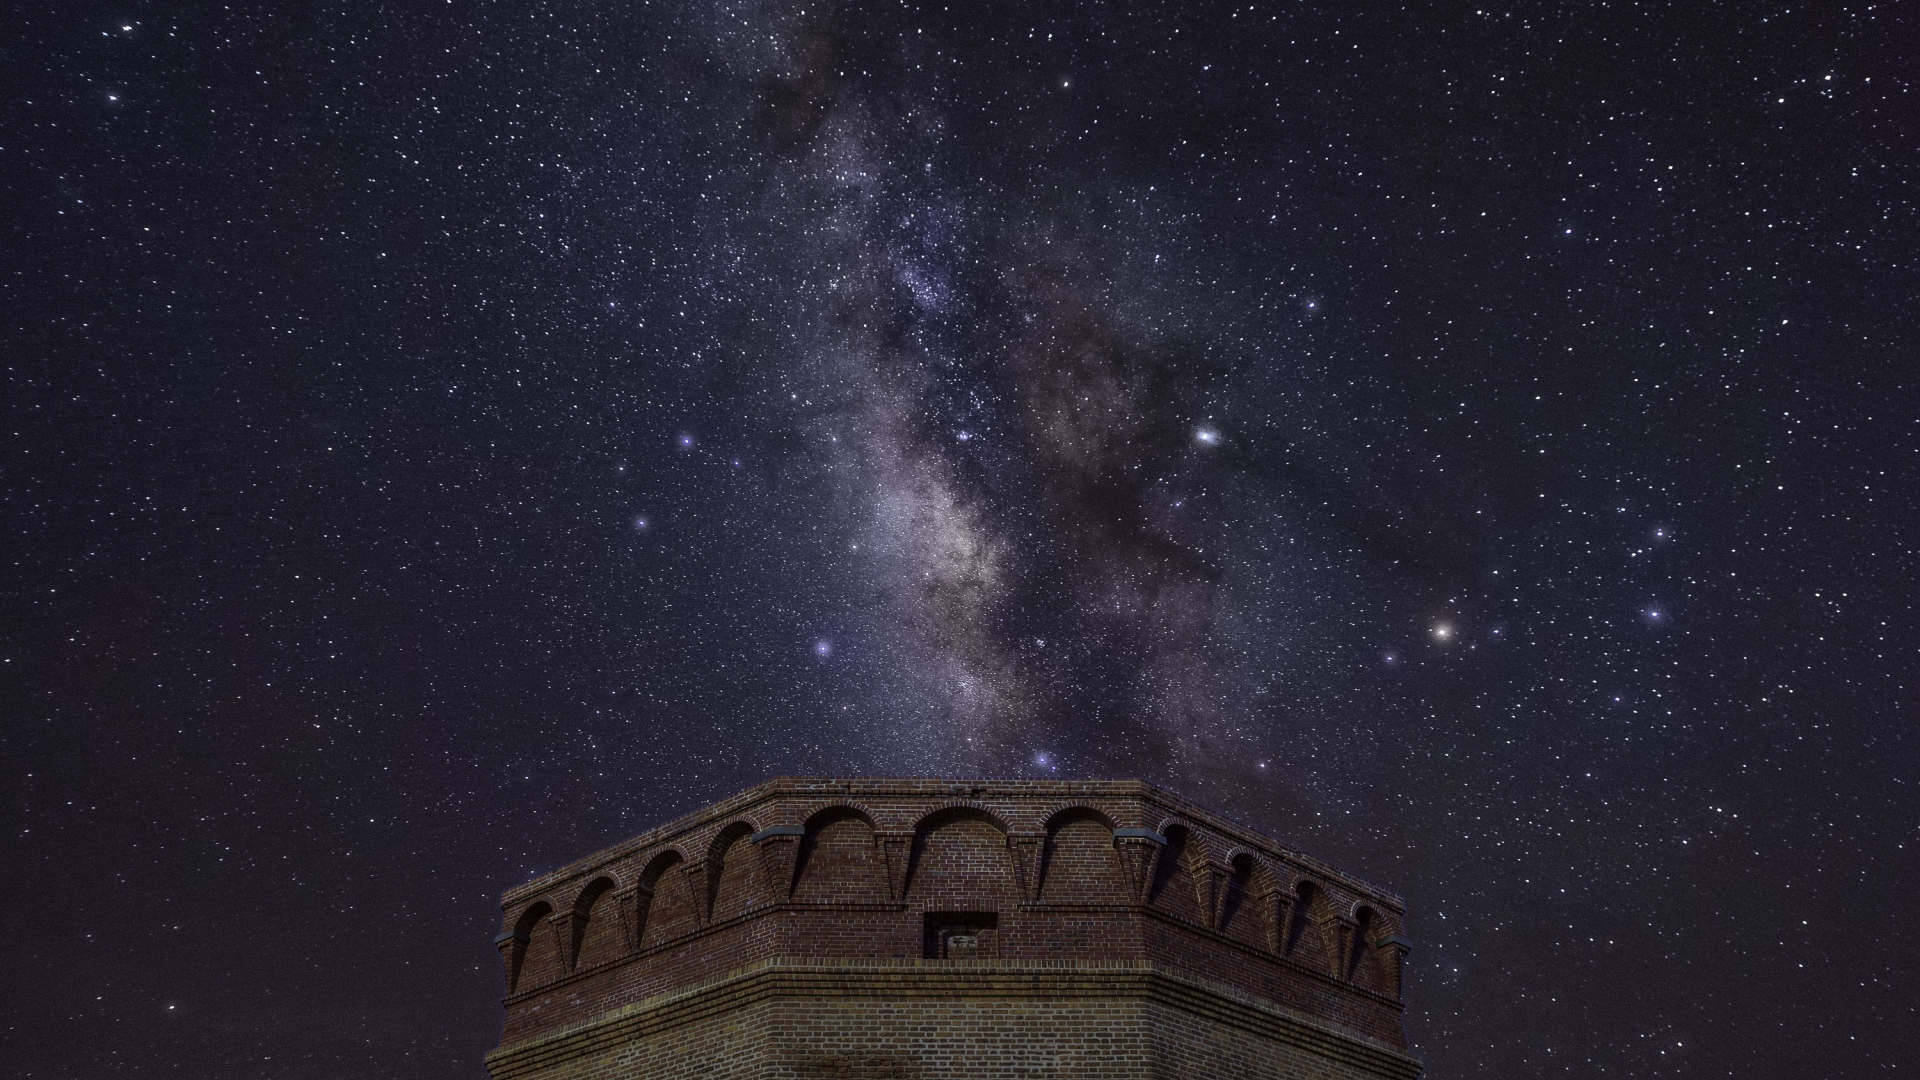 The Milky Way over the brick fortress of Dry Tortugas National Park